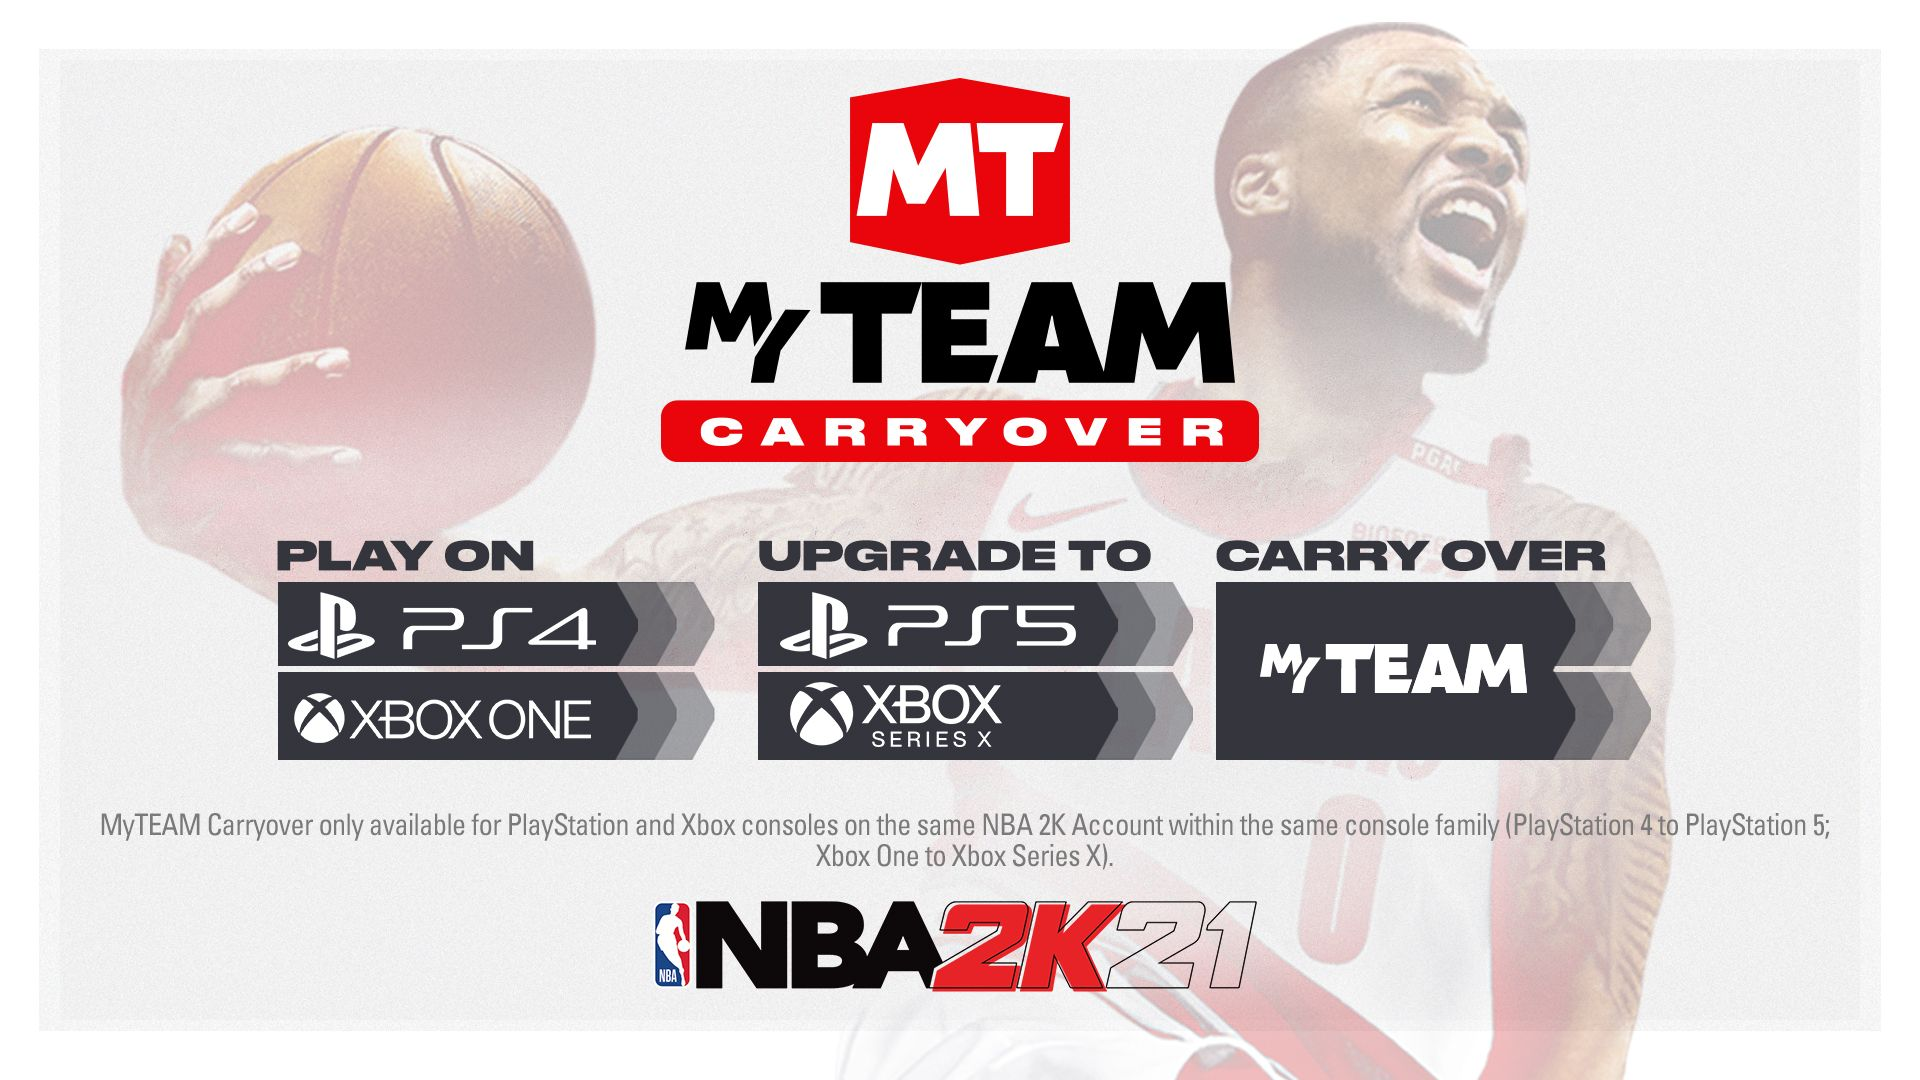 Nba 2k21 Myteam Courtside Report